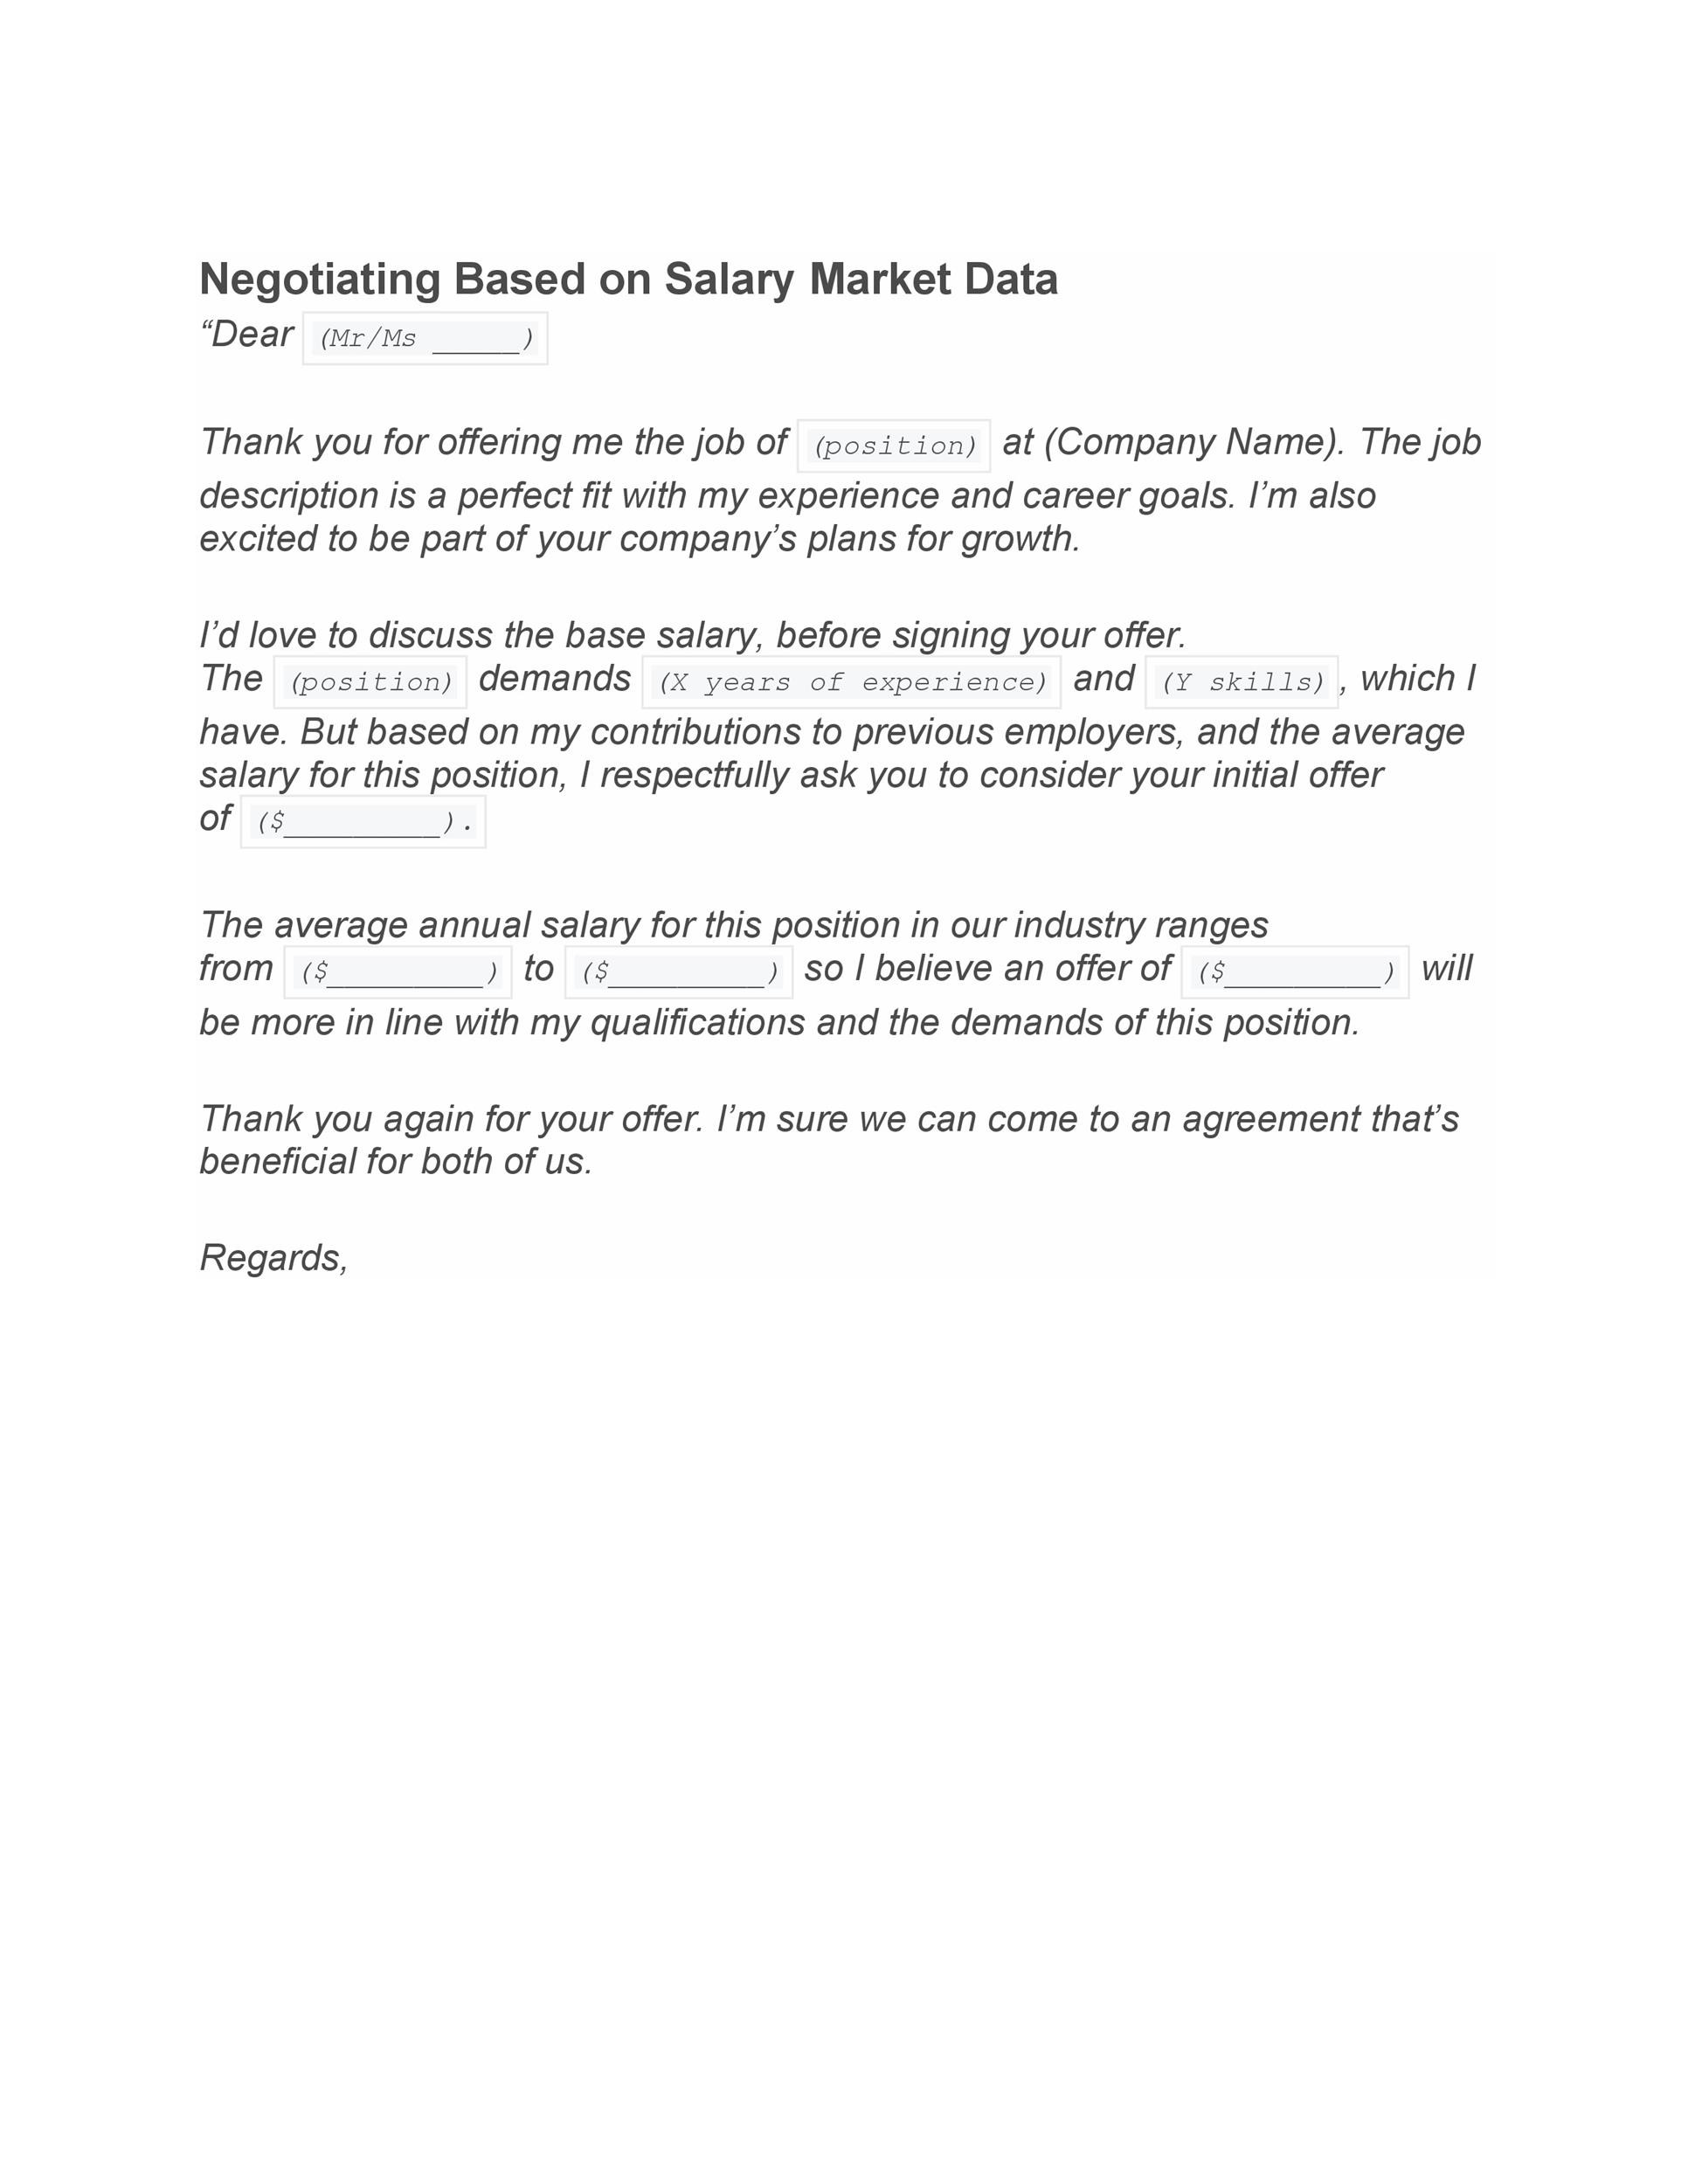 34 Best Salary Requirements Cover Letters (+Tips) ᐅ Template Lab